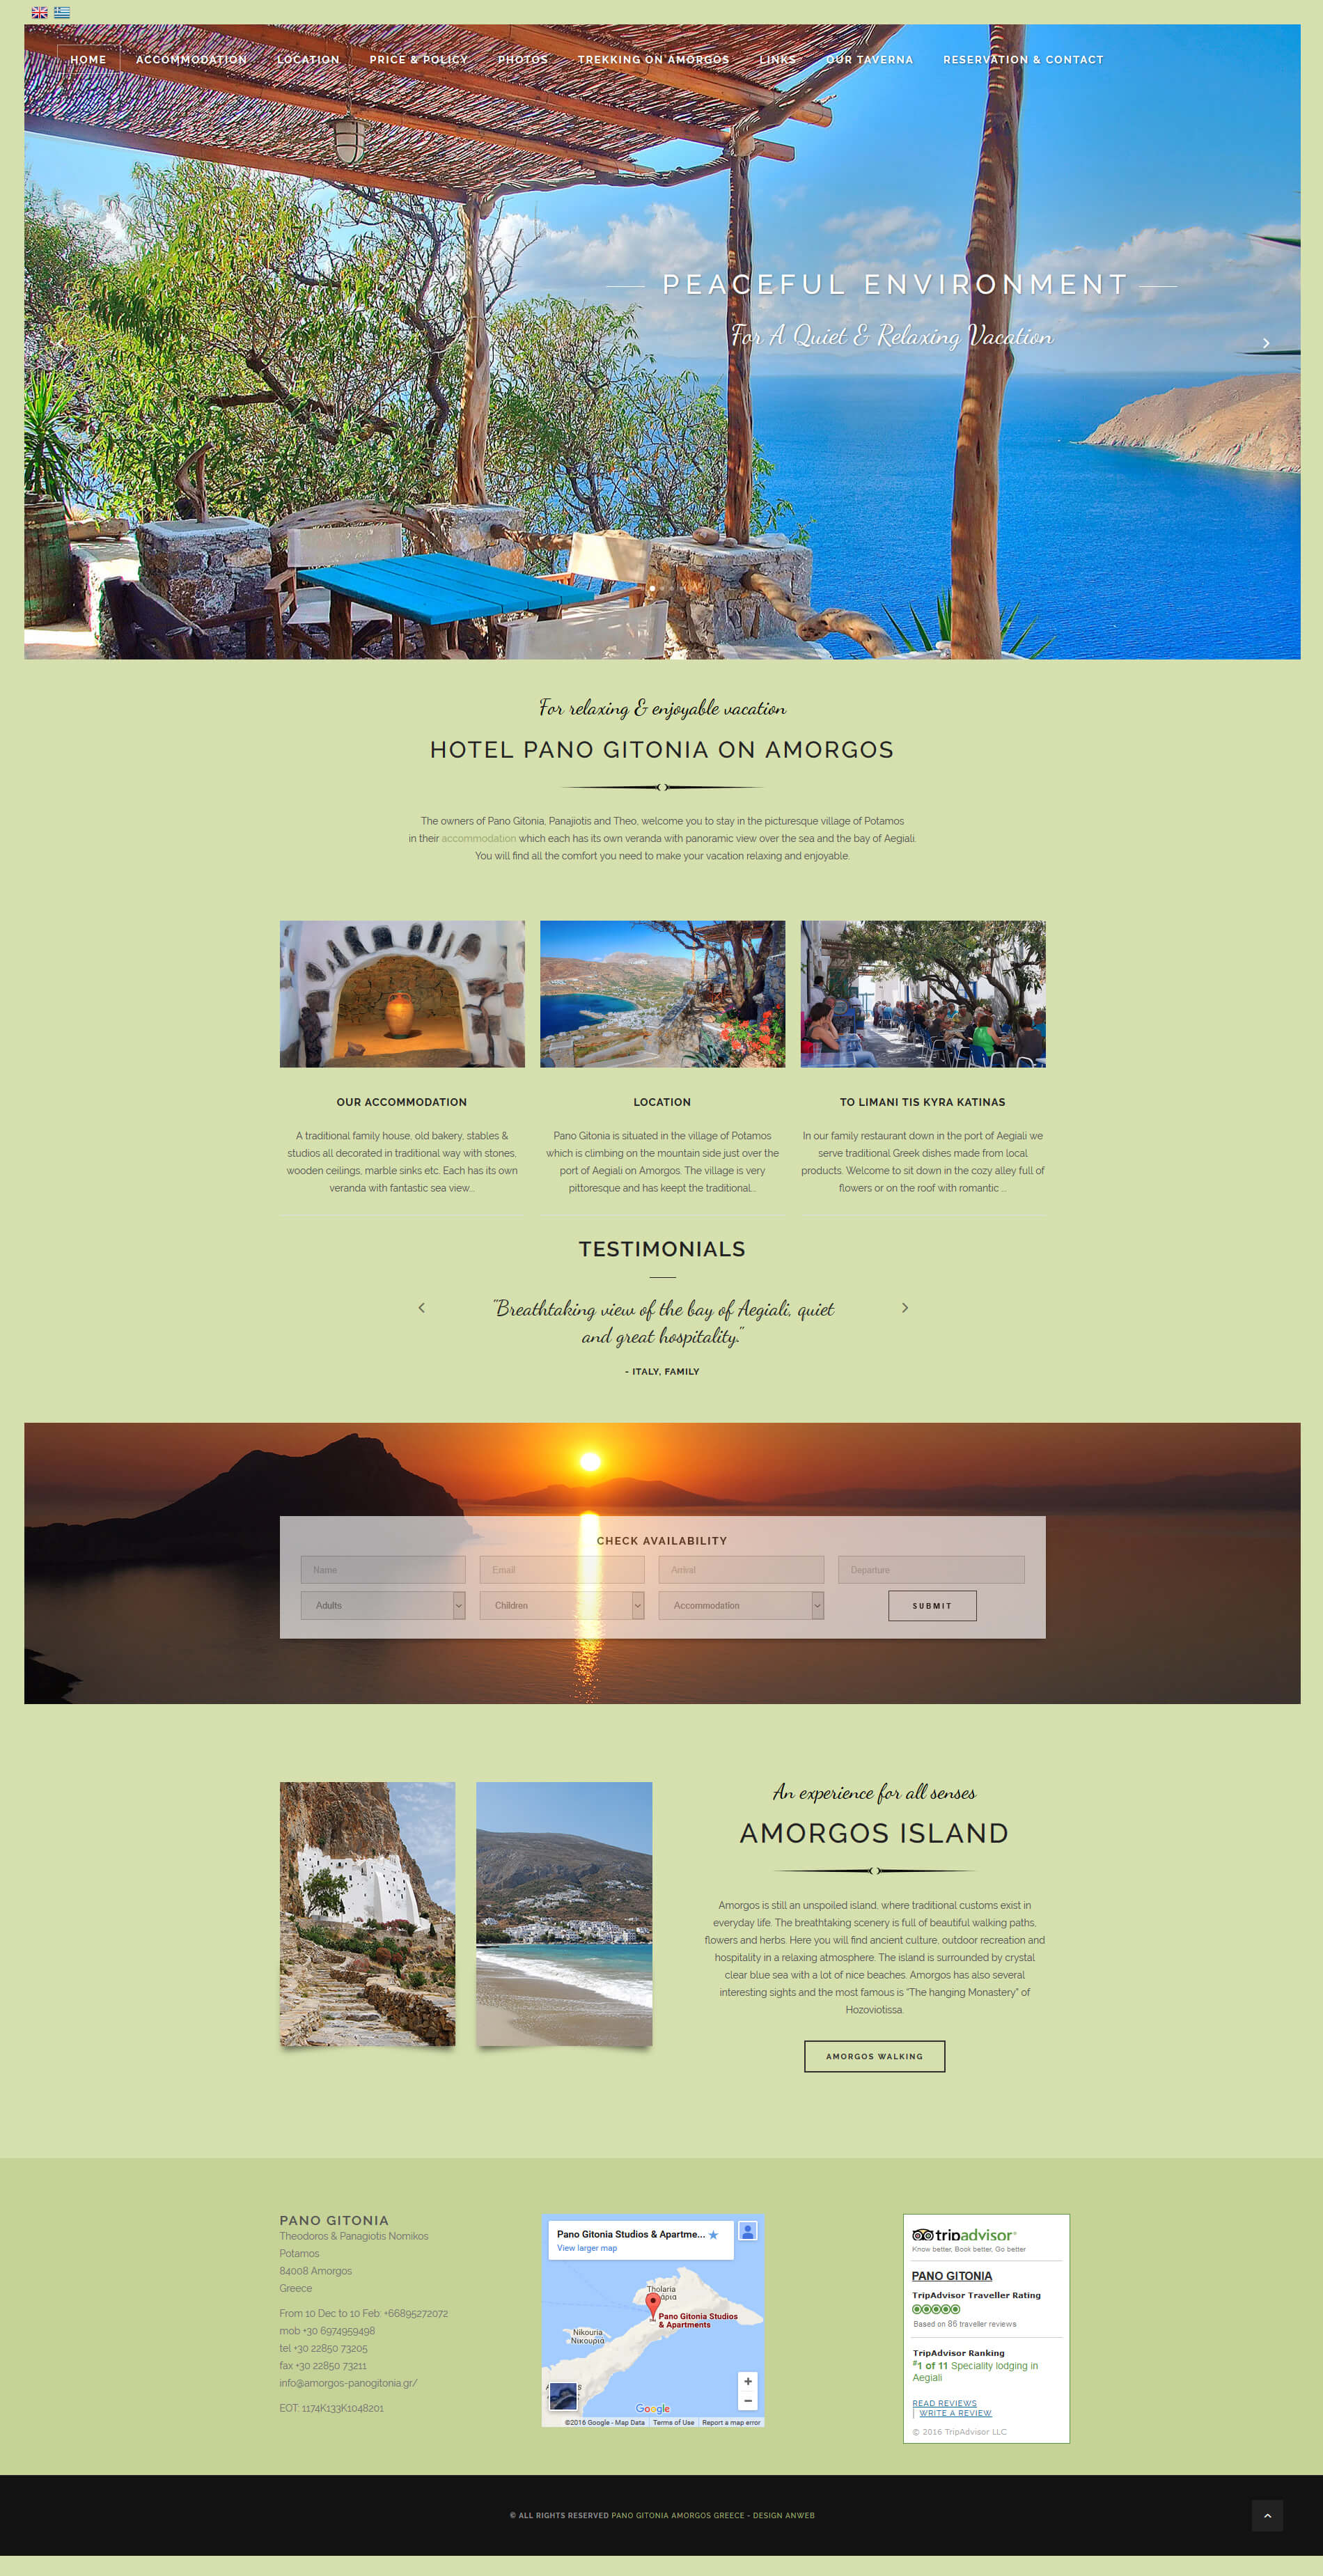 Website WordPress anweb Hotel Pano Gitonia Amorgos